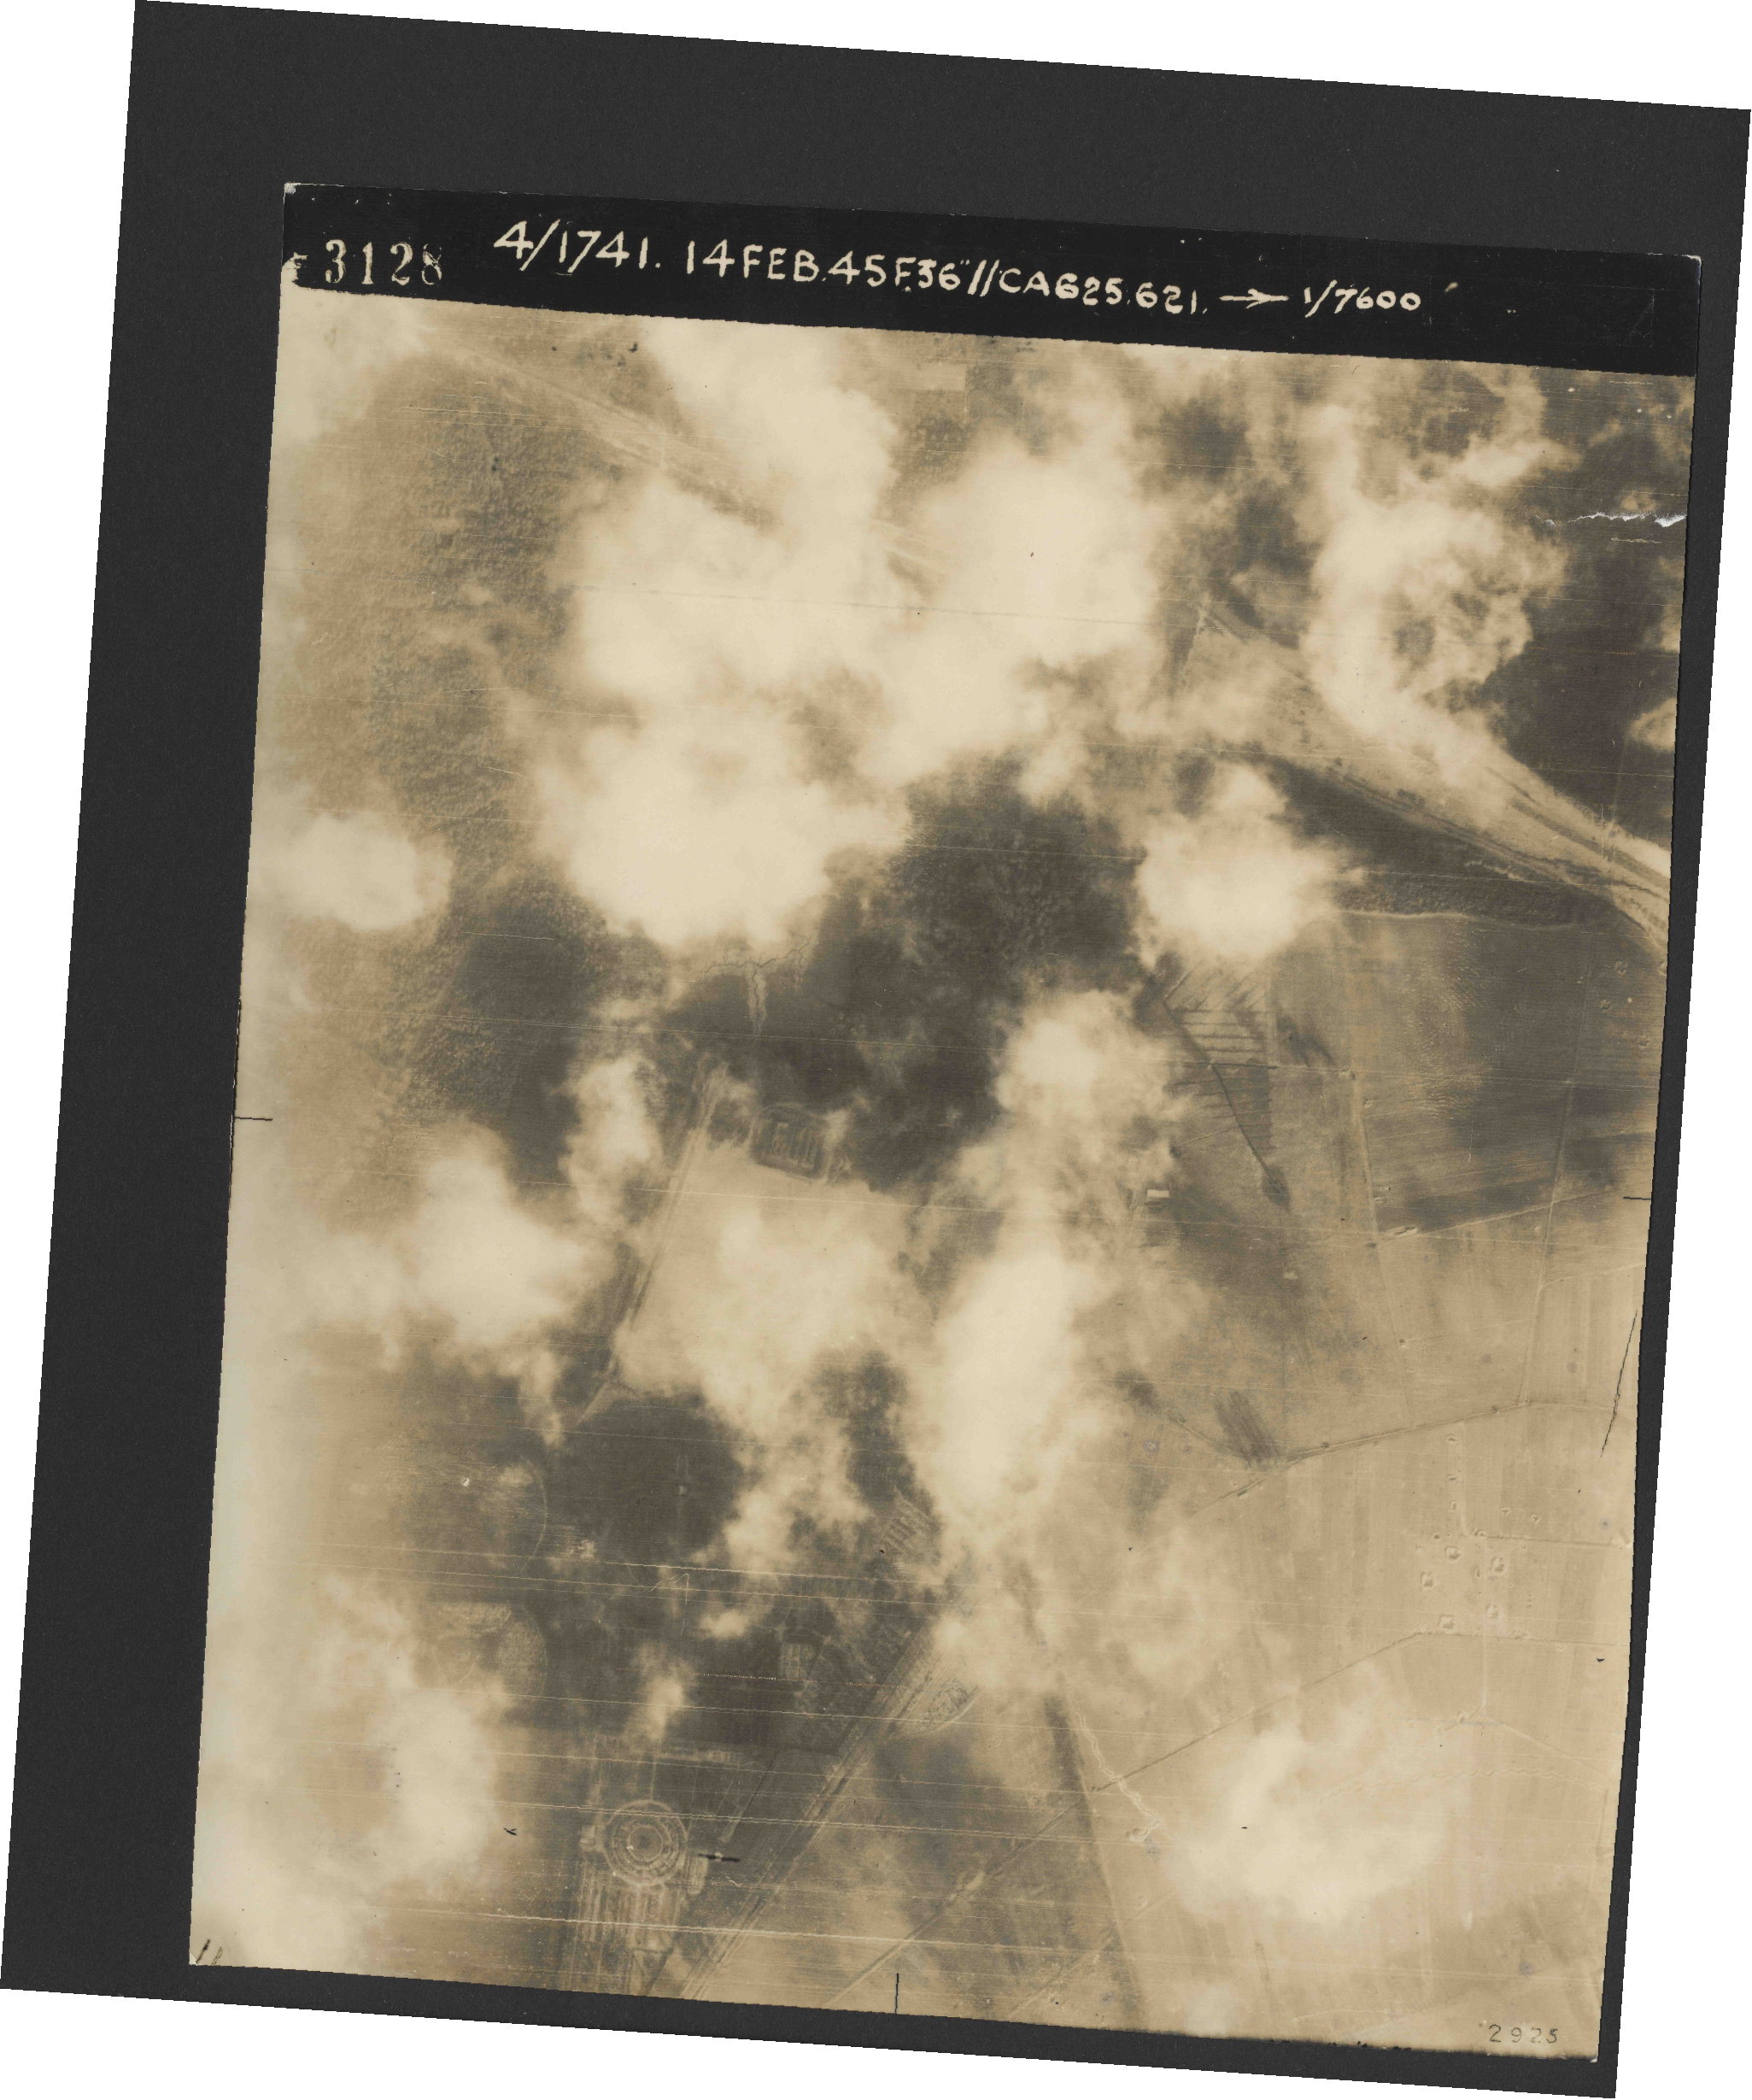 Collection RAF aerial photos 1940-1945 - flight 132, run 01, photo 3128